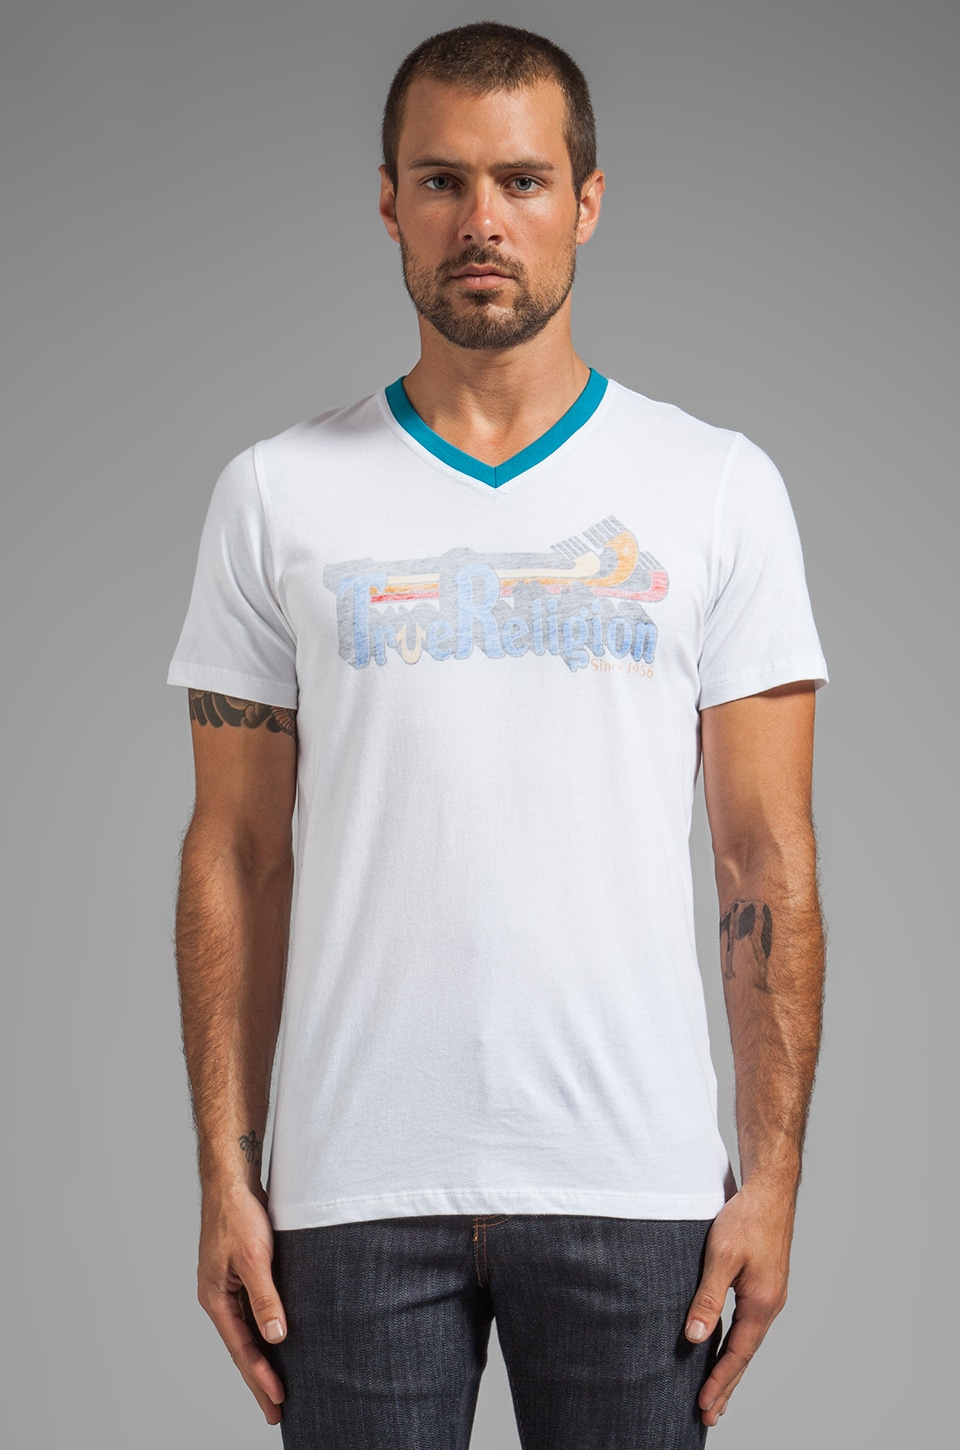 True Religion Yosemite Tee in White/ Dark Teal